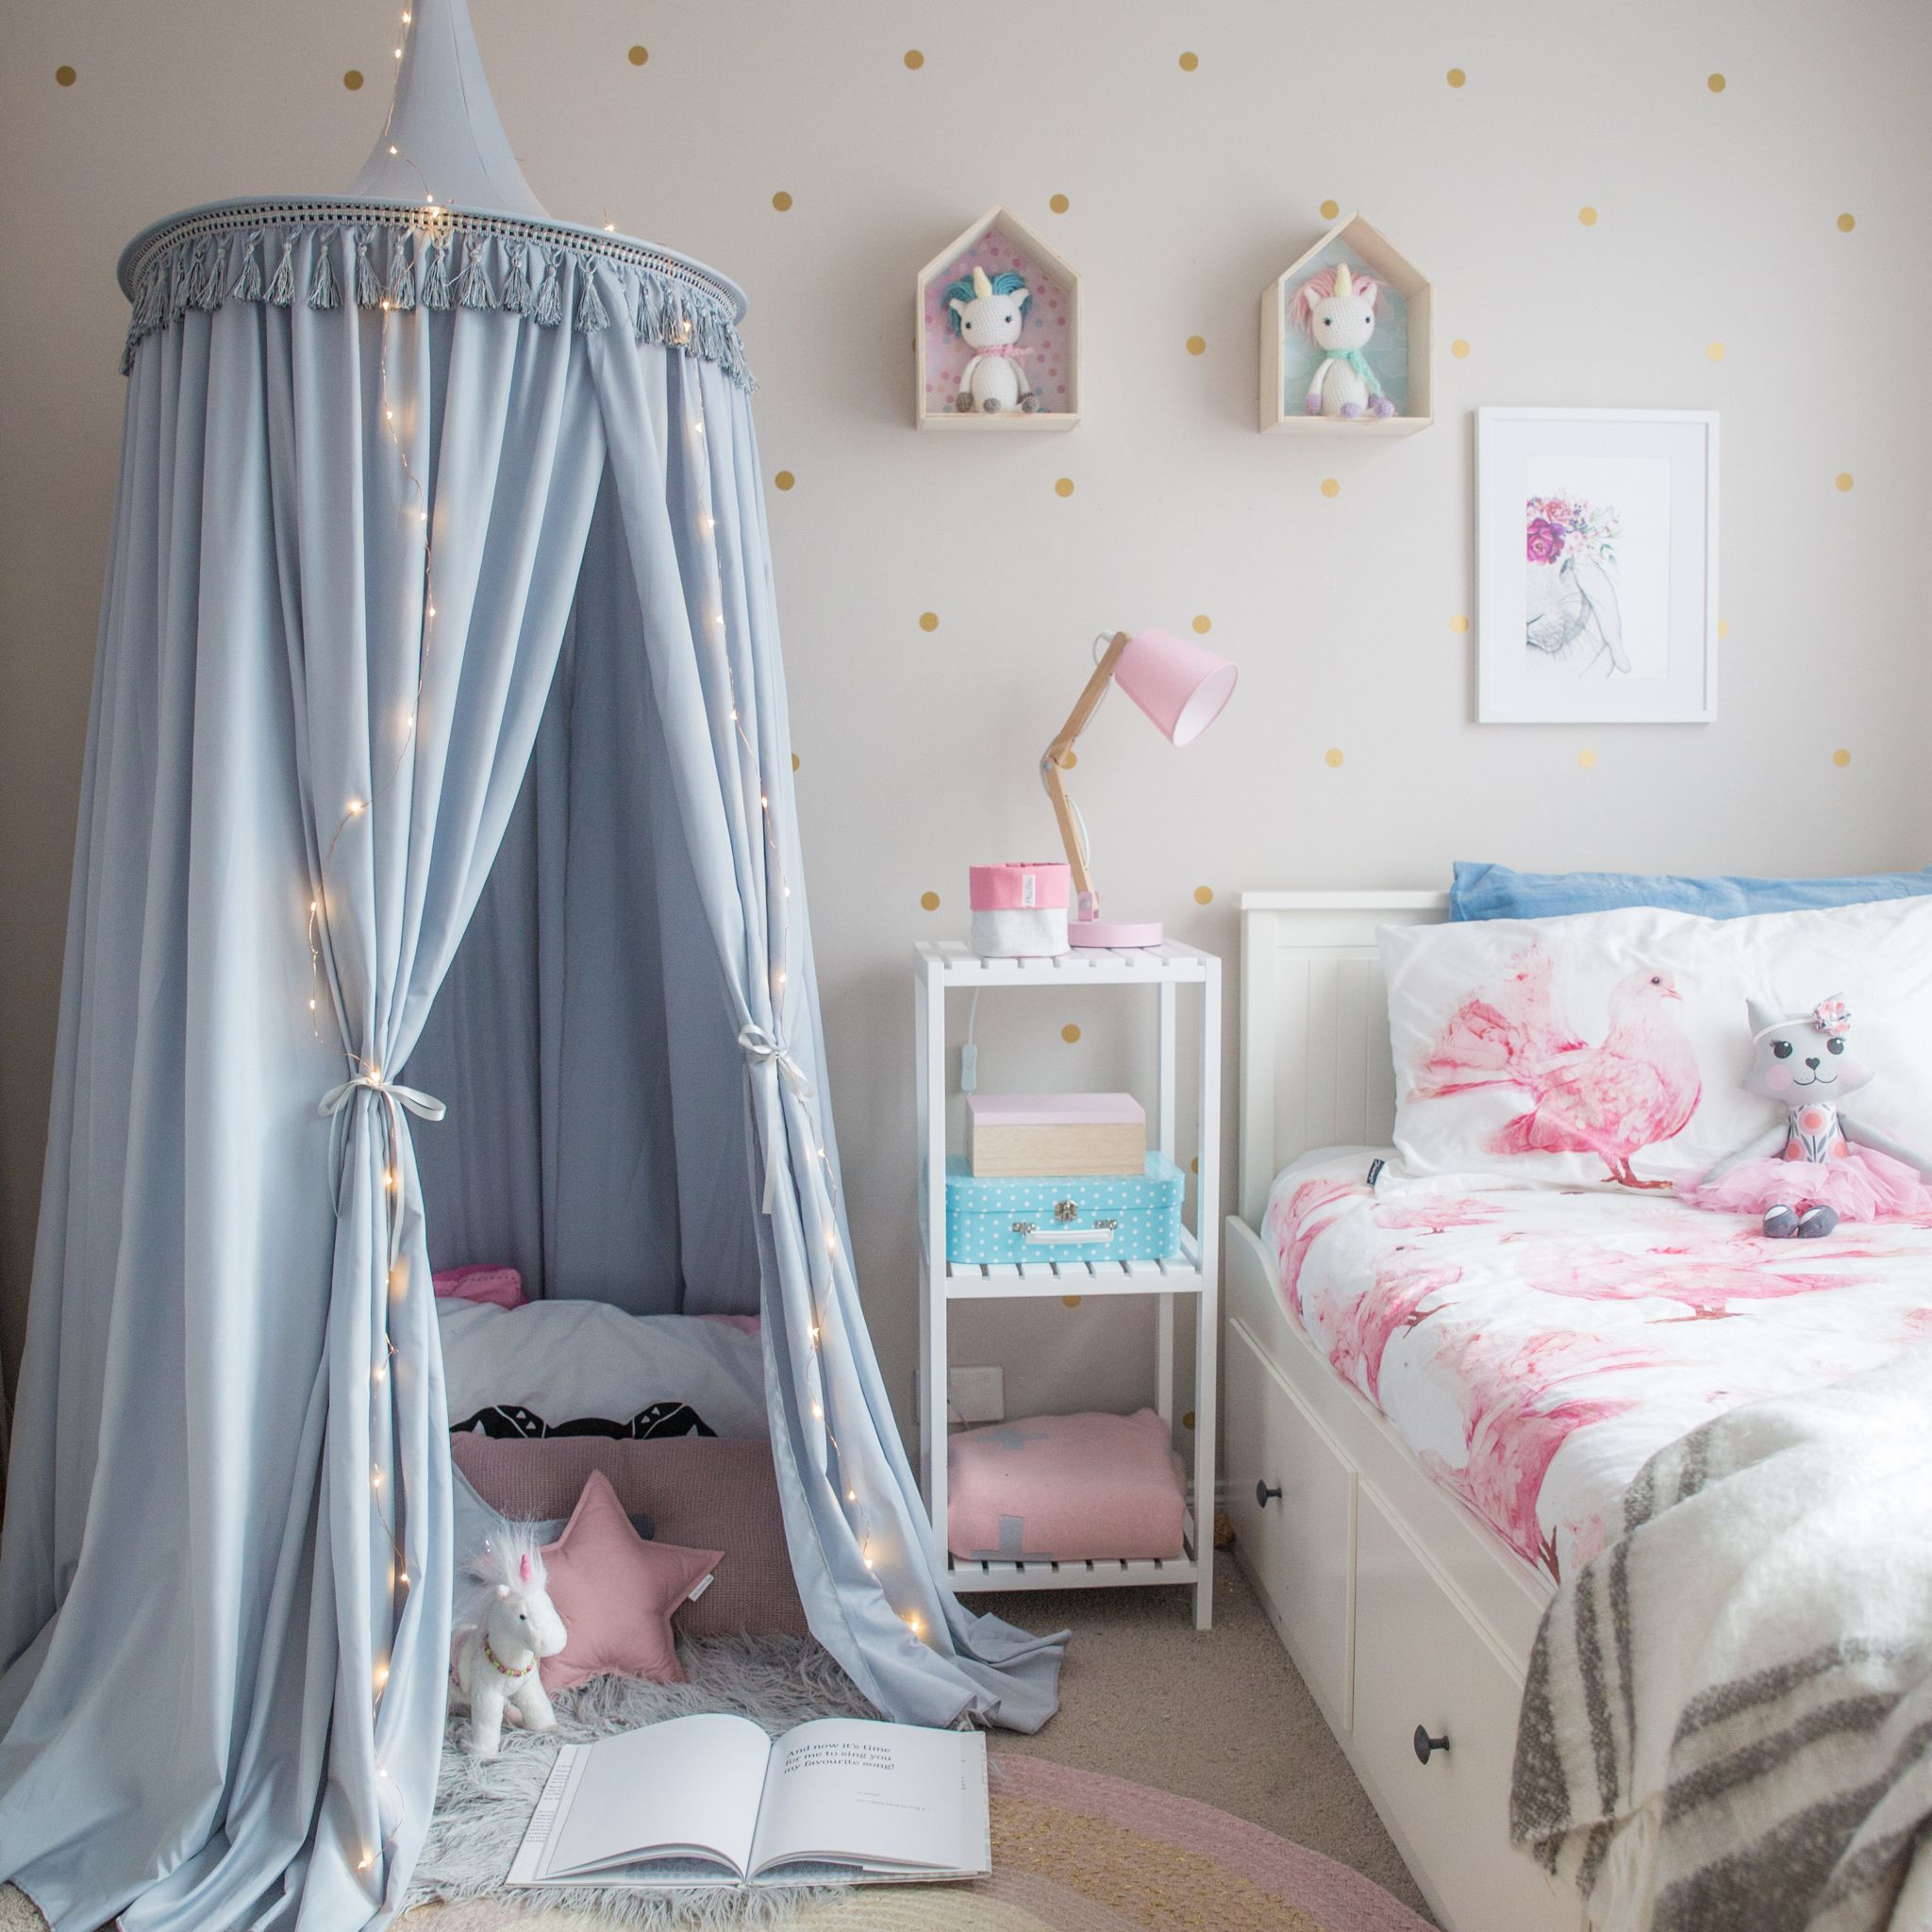 Kidu0027s Hanging Play Canopy Tent In Light Grey! Gorgeous! Girls Bedroom Ideas,  Hang Part 55